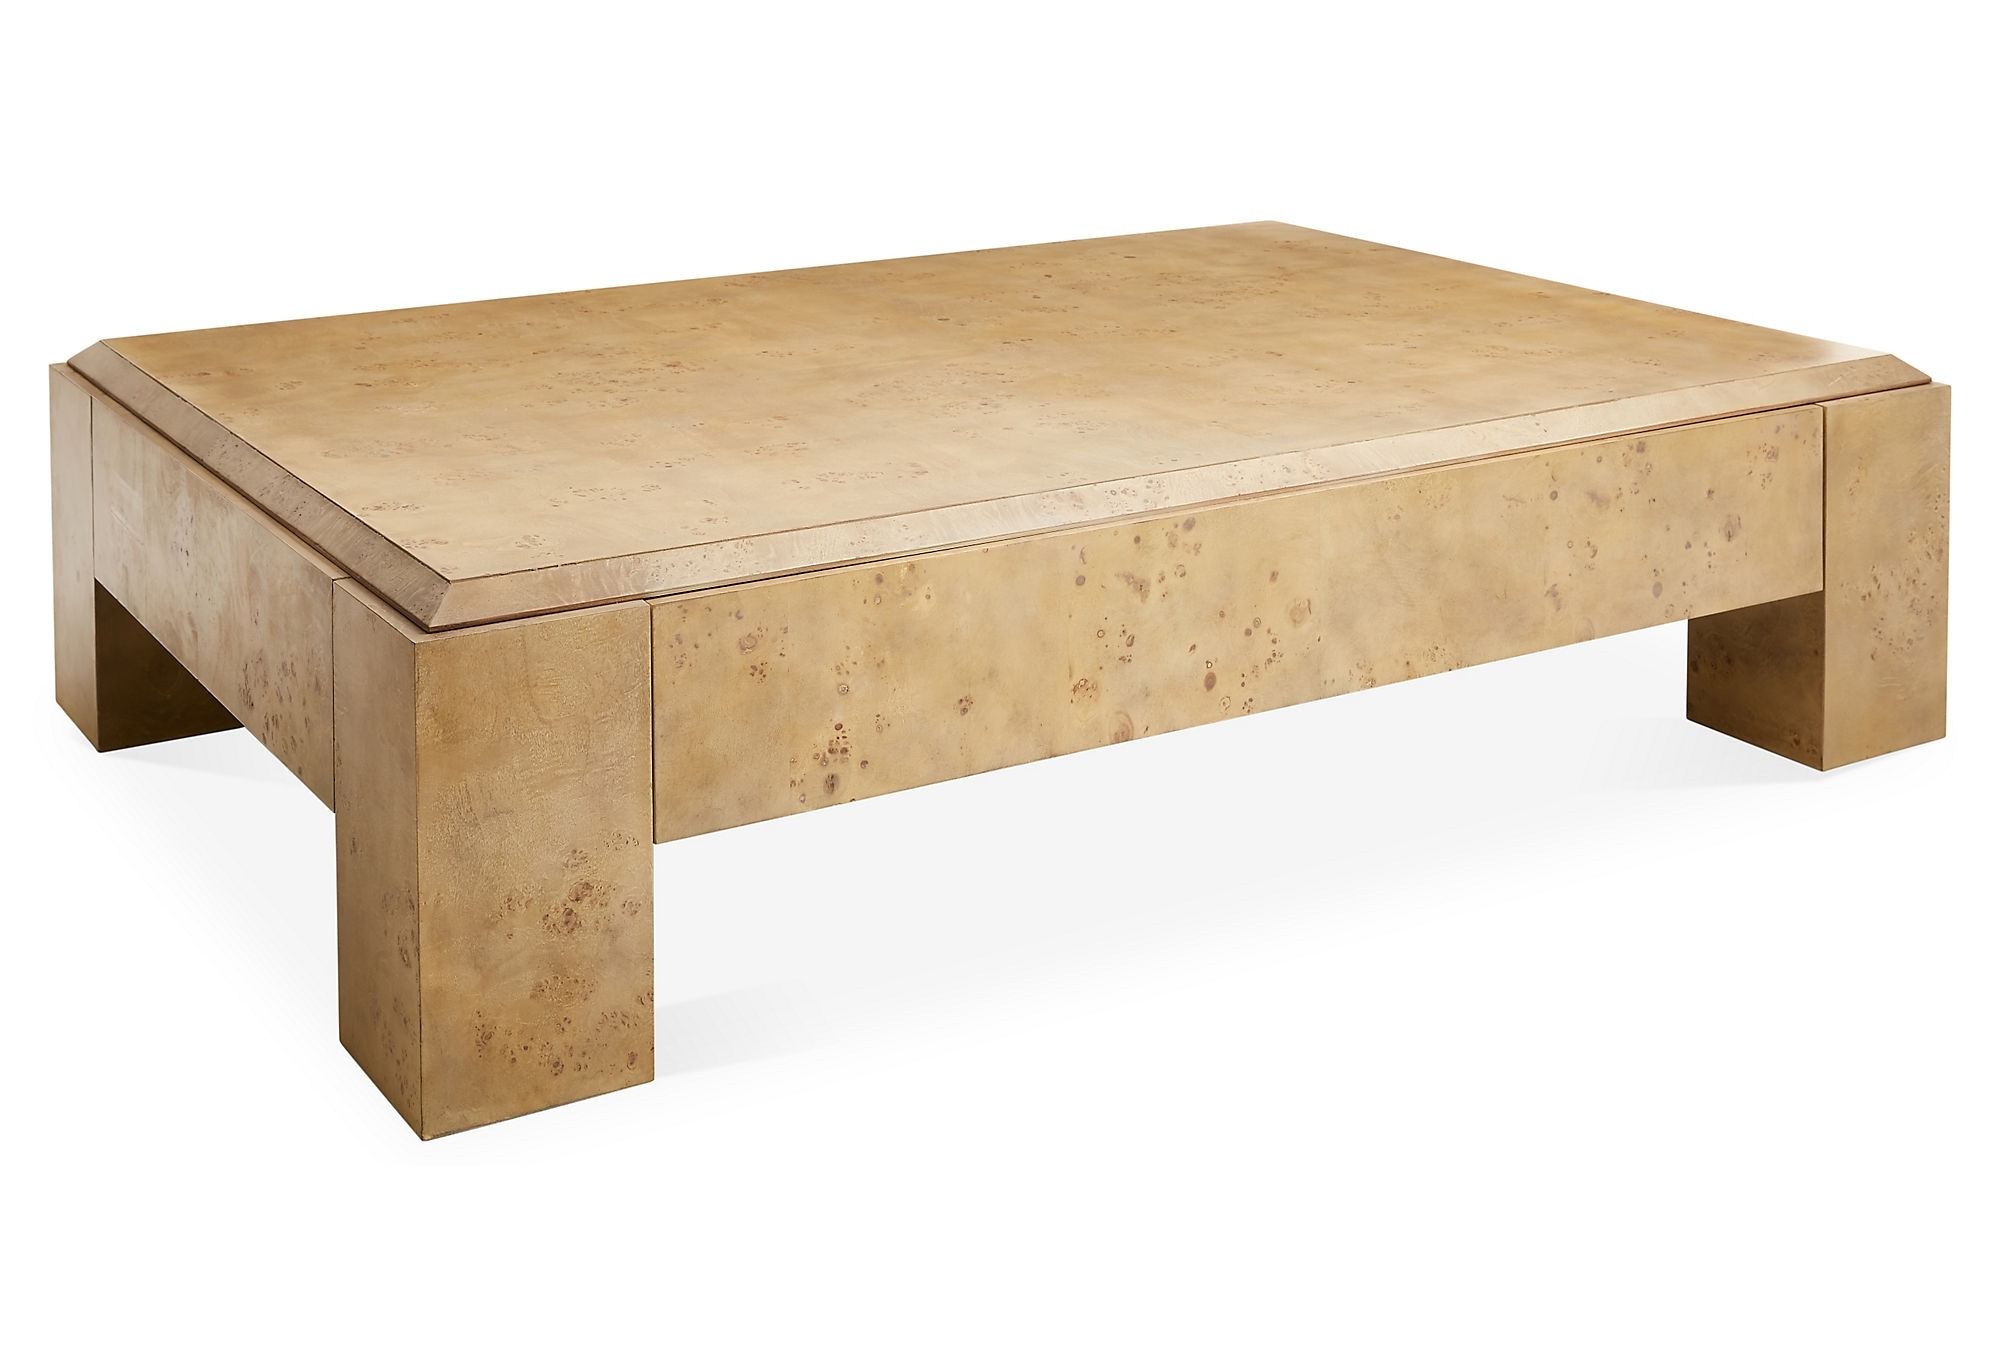 Lovely Burled Wood Coffee Table - Sarjaopas | Sarjaopas for Joni Brass and Wood Coffee Tables (Image 21 of 30)